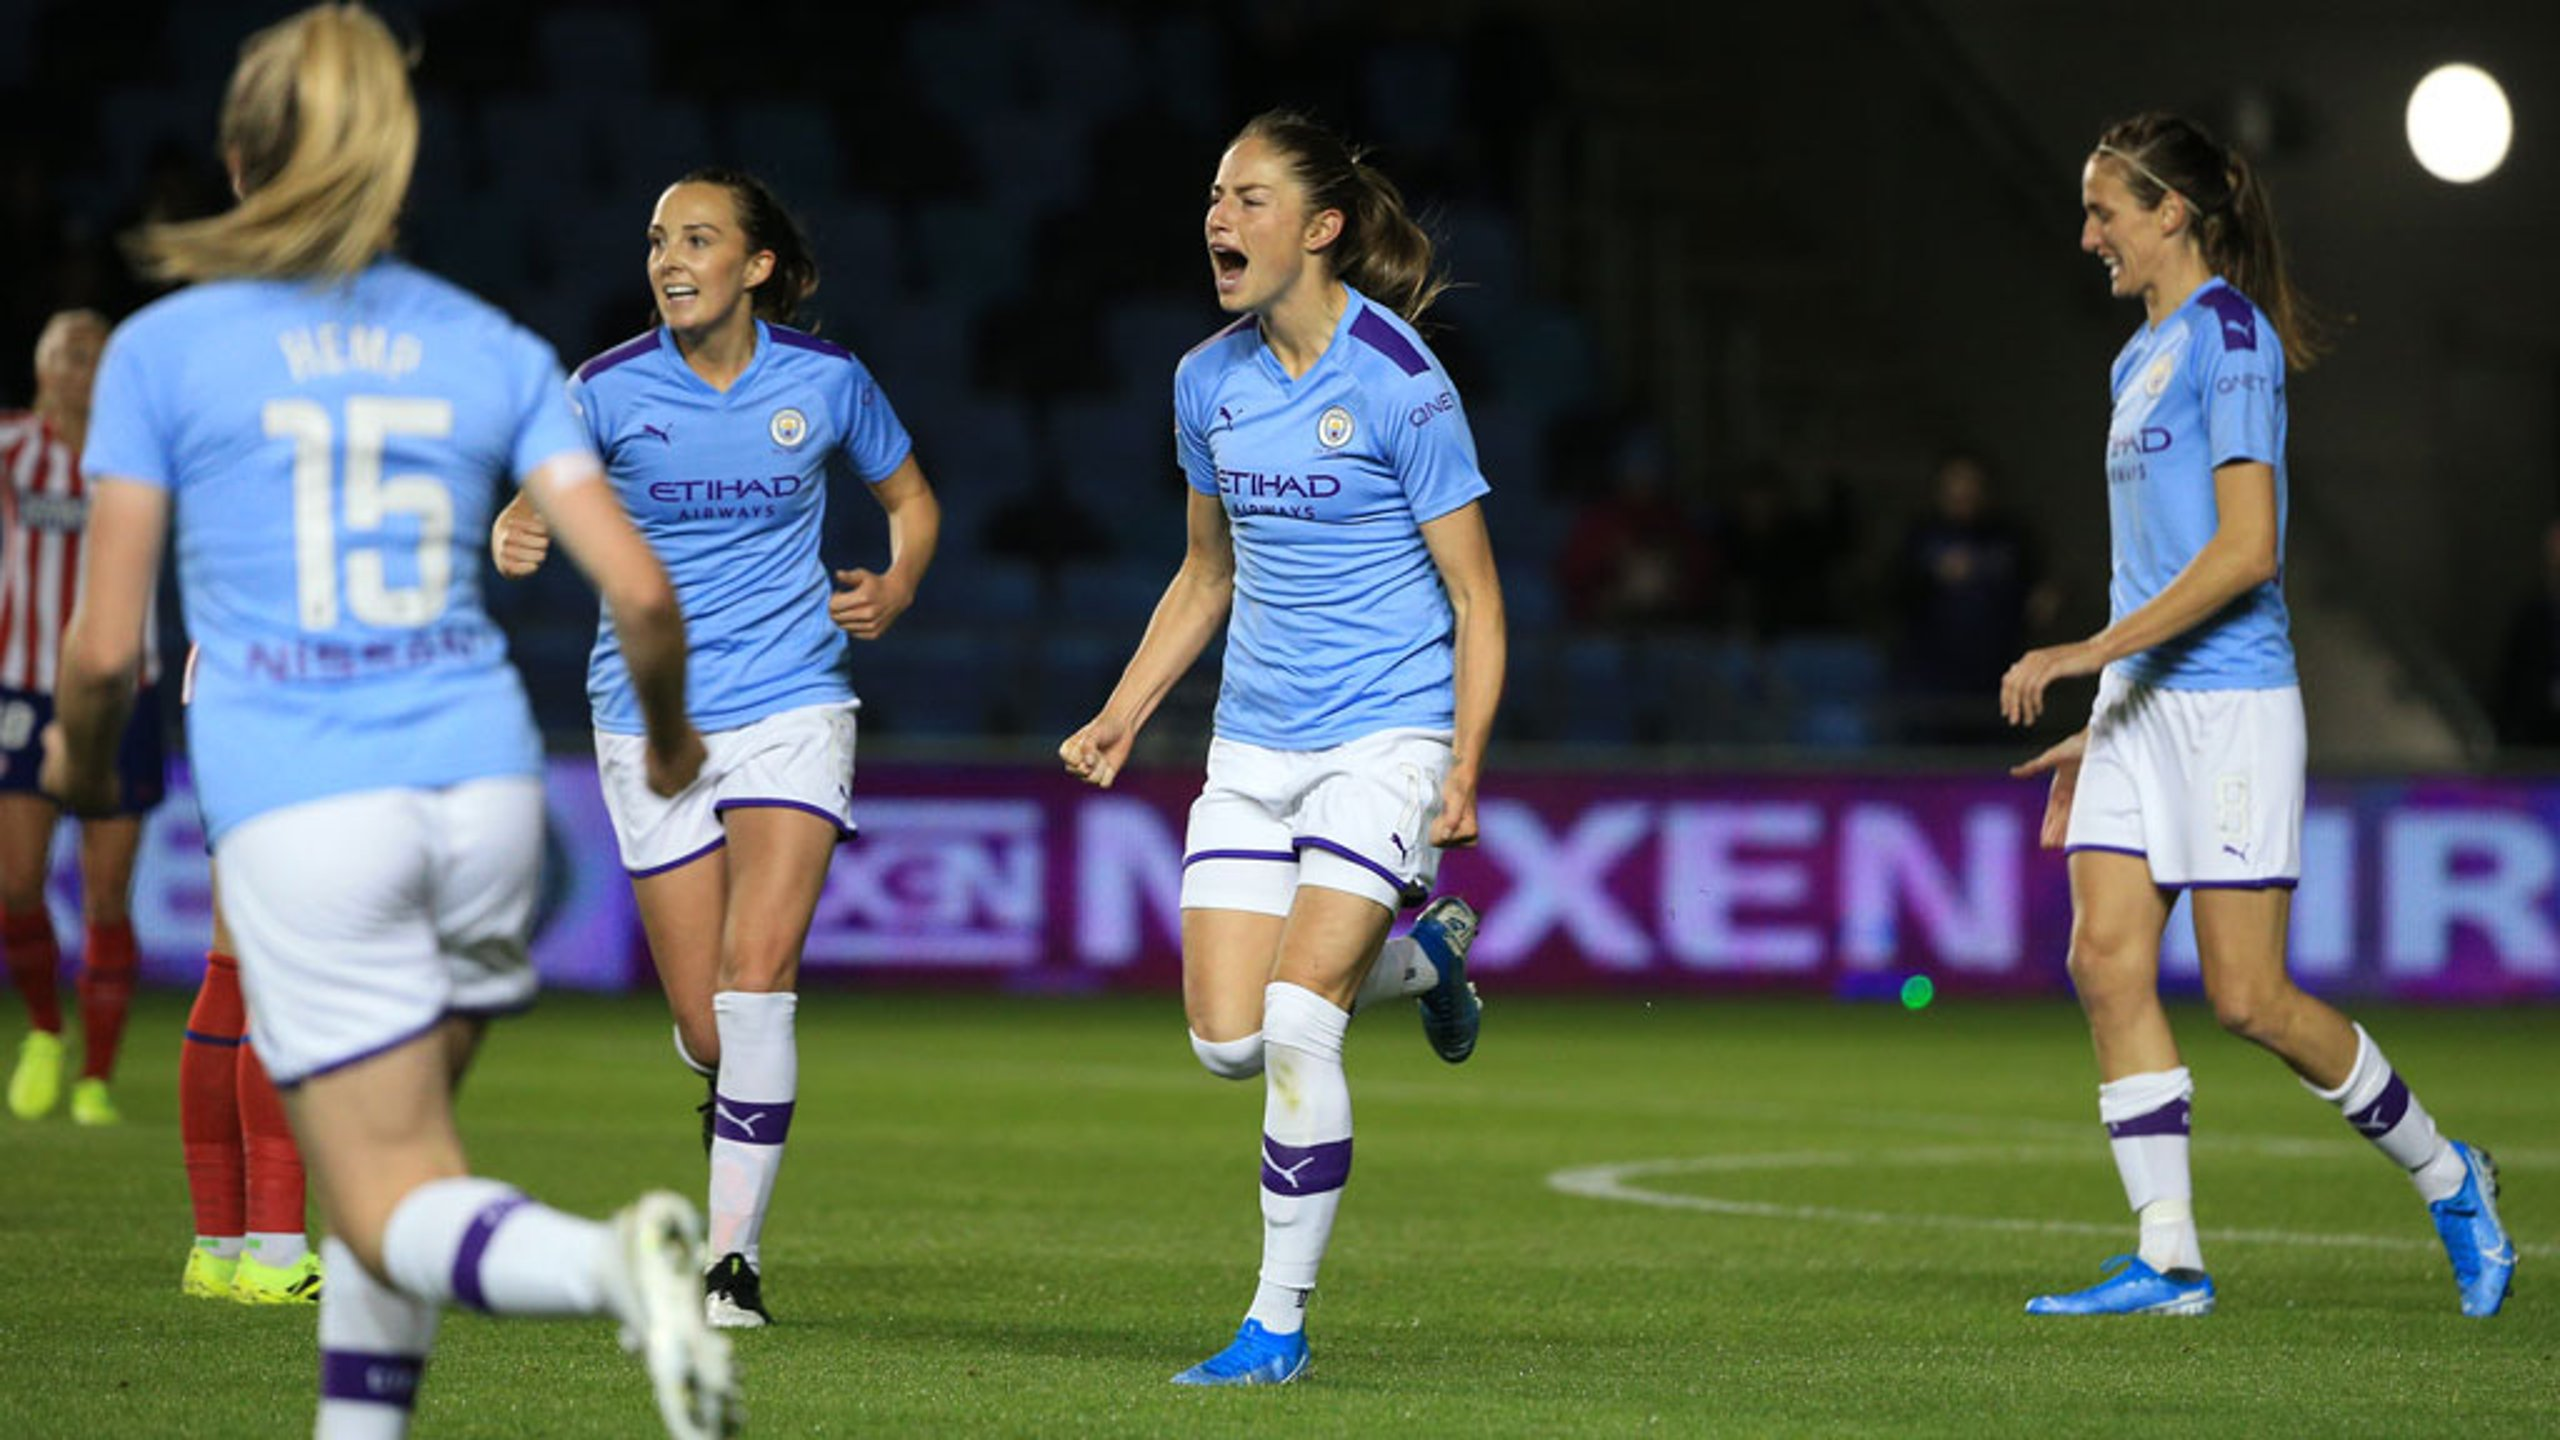 GOAL JANINE: Janine Beckie bagged her fifth goal of the season to open the scoring against Atletico